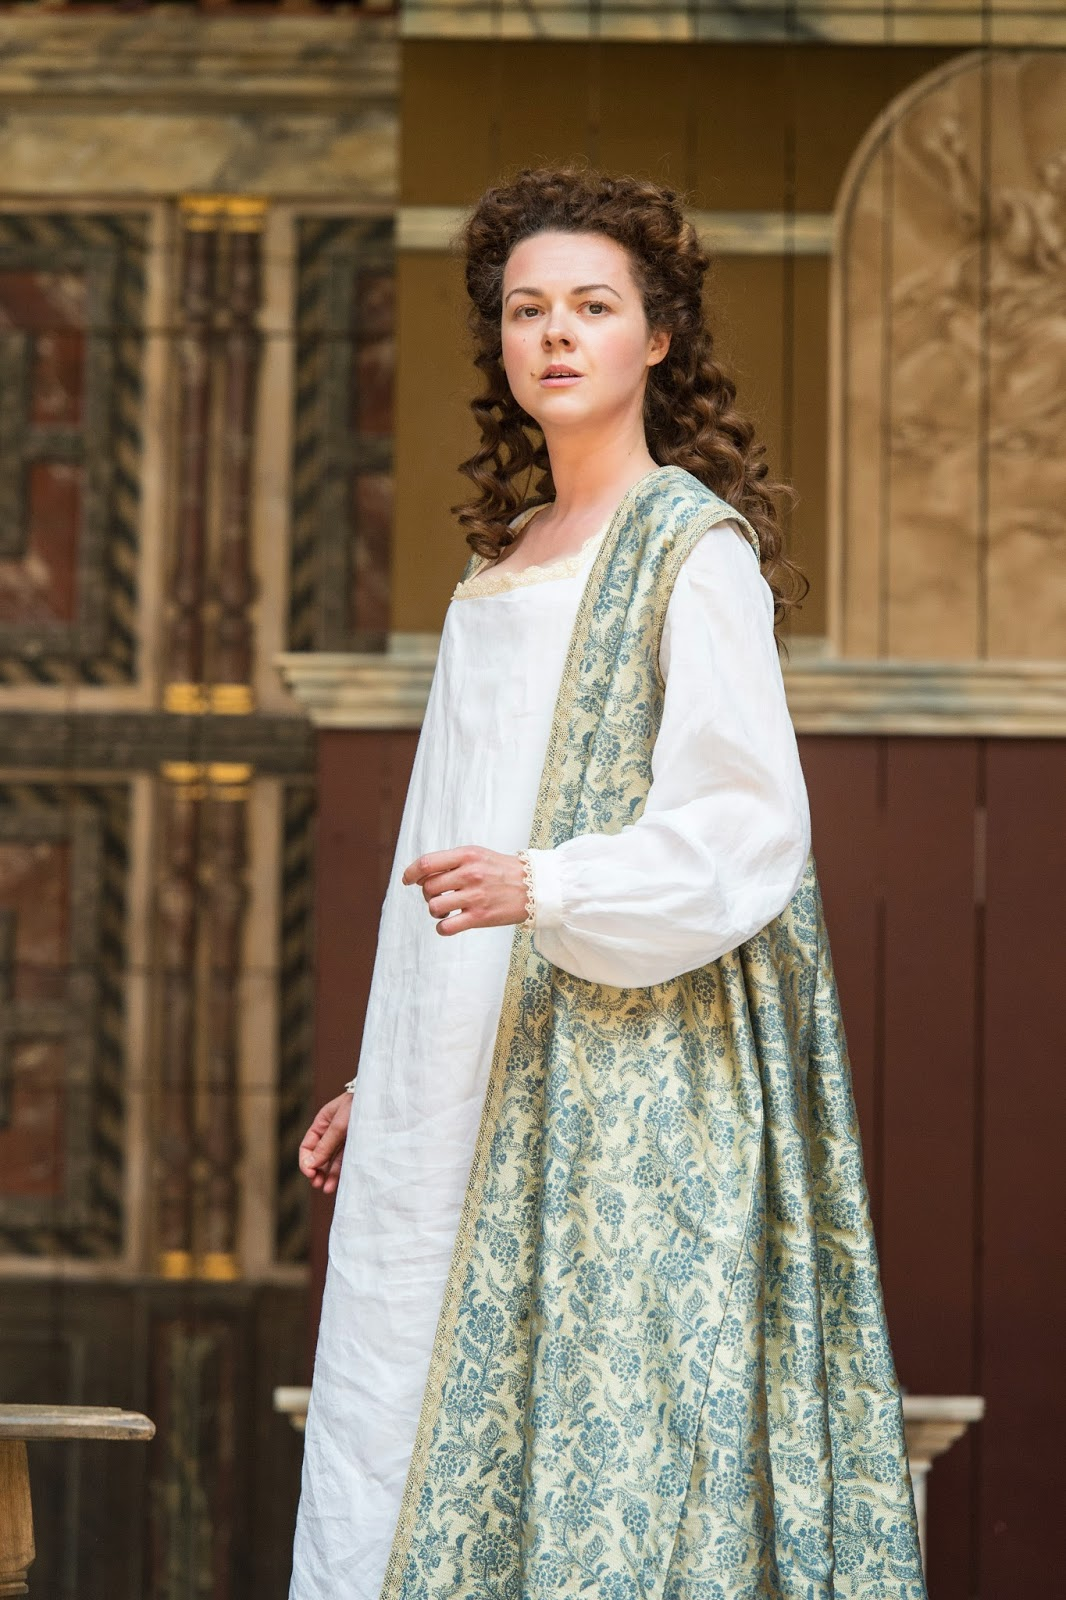 Catherine Bailey as Portia in Dominic Dromgoole's 2014 production of Julius Caesar